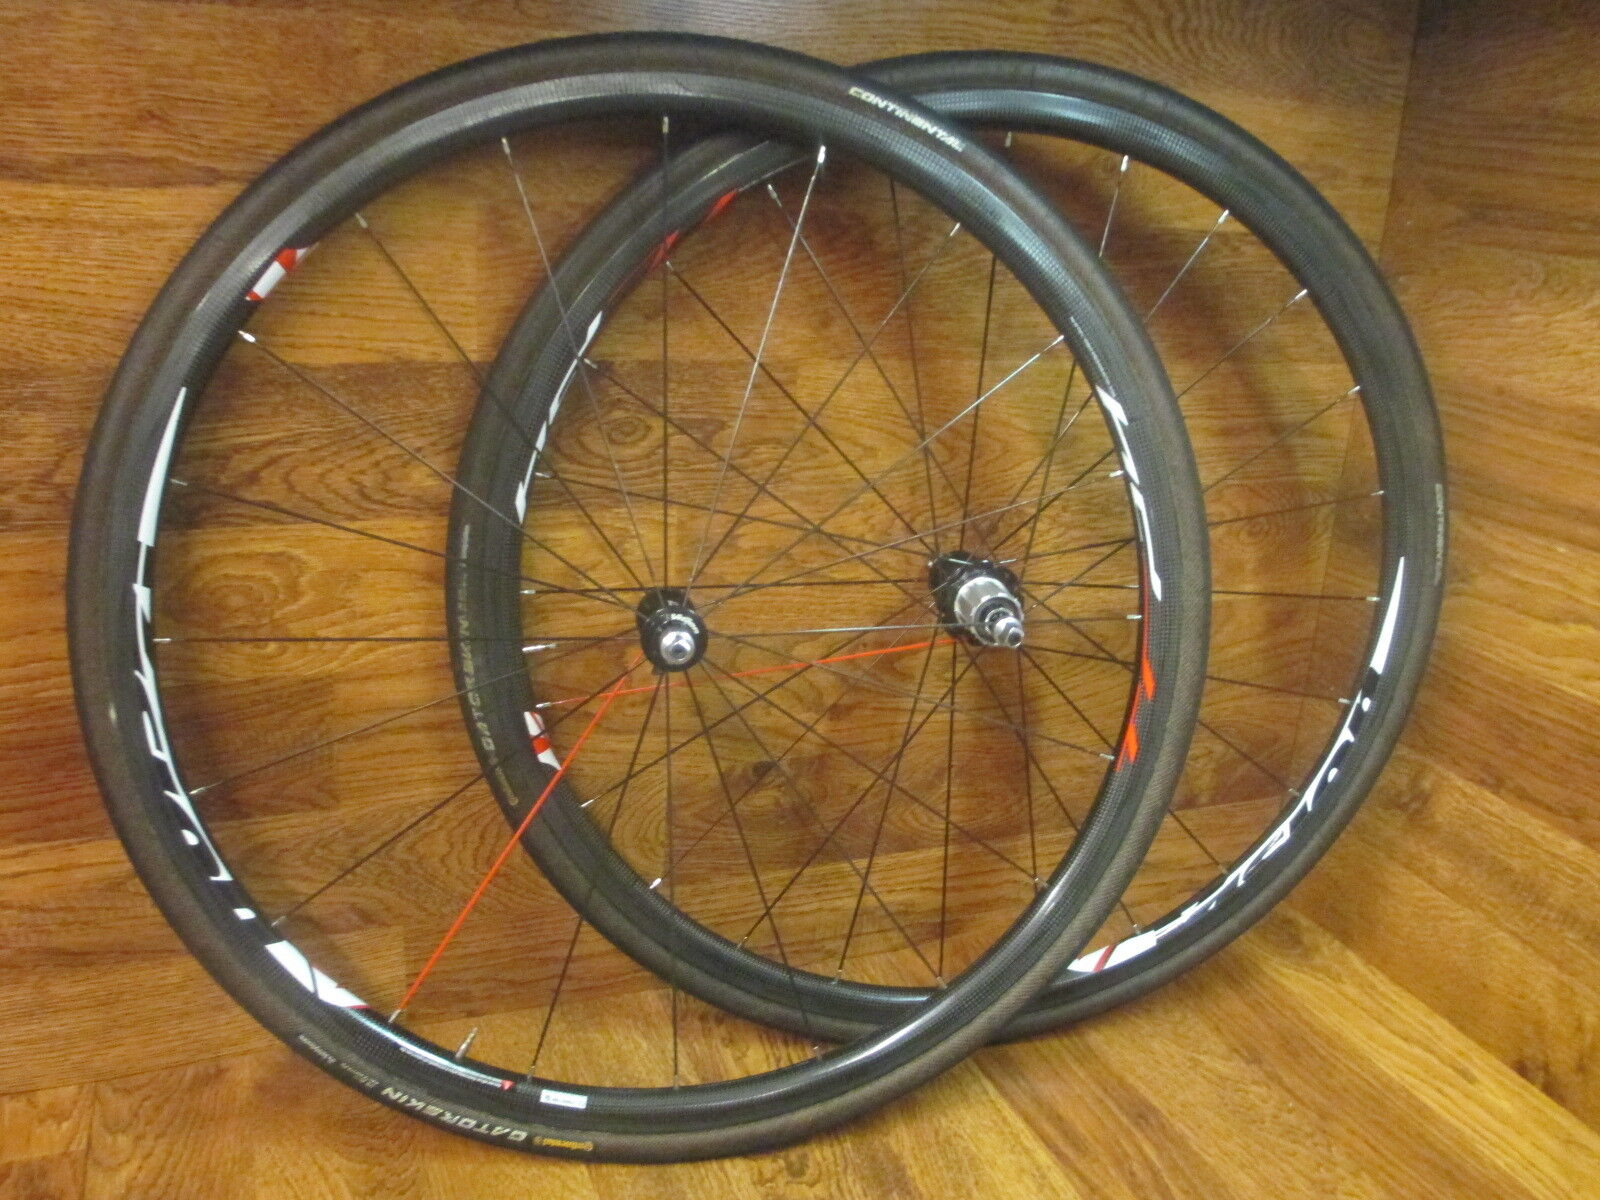 FSA VISION TRIMAX TC24 700C CARBON TUBULAR 10 SPEED SHIMANO  SRAM WHEEL SET TIRES  online sales